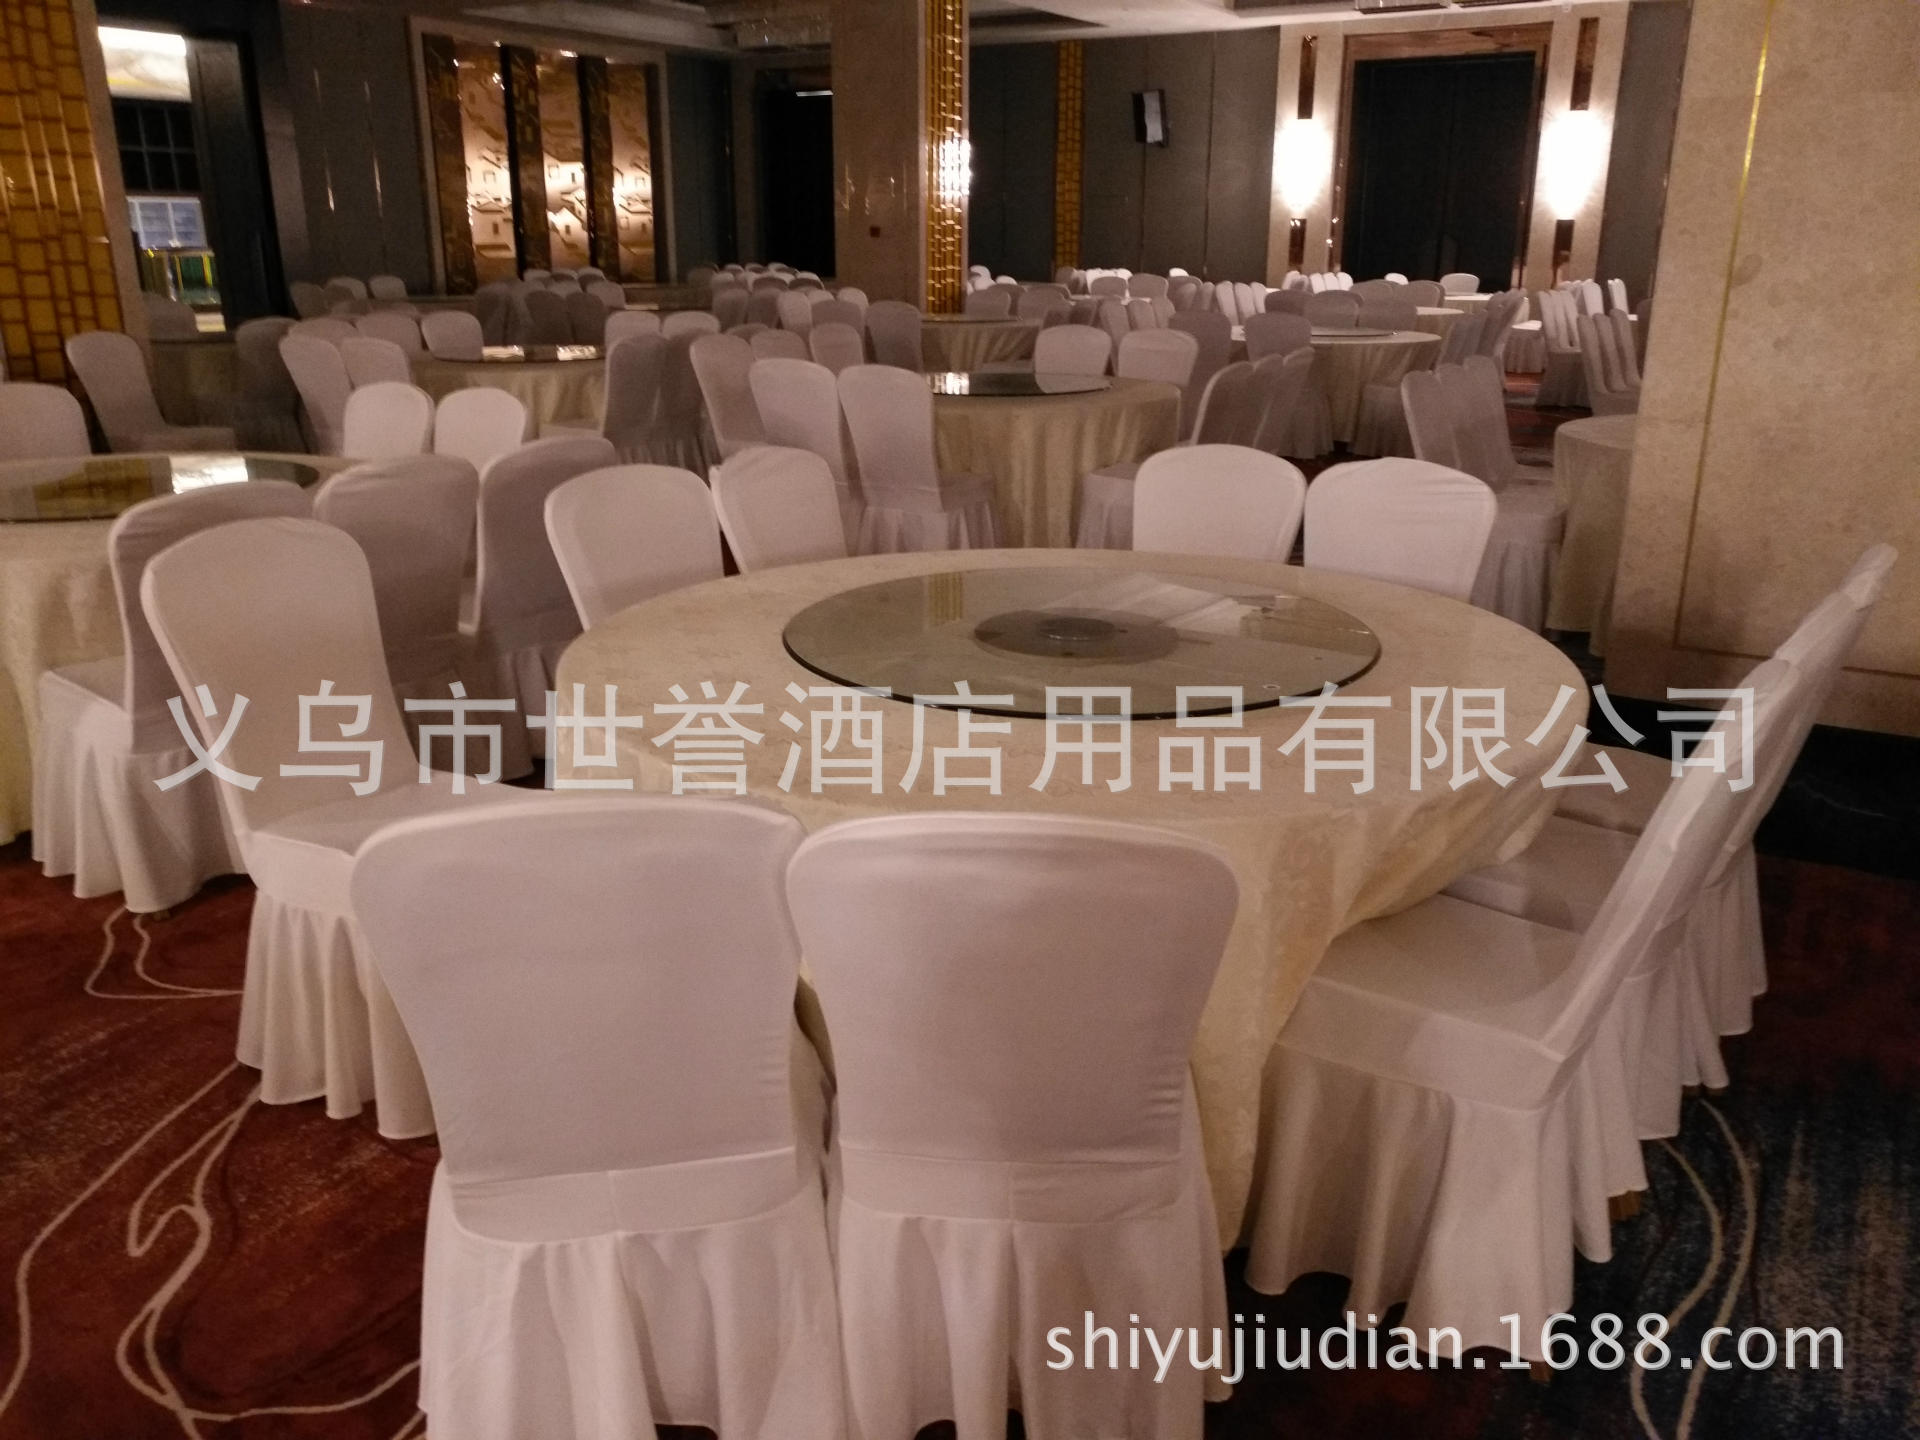 standard banquet chairs toddler target supply nanjing wuxi hotel wedding chair covers